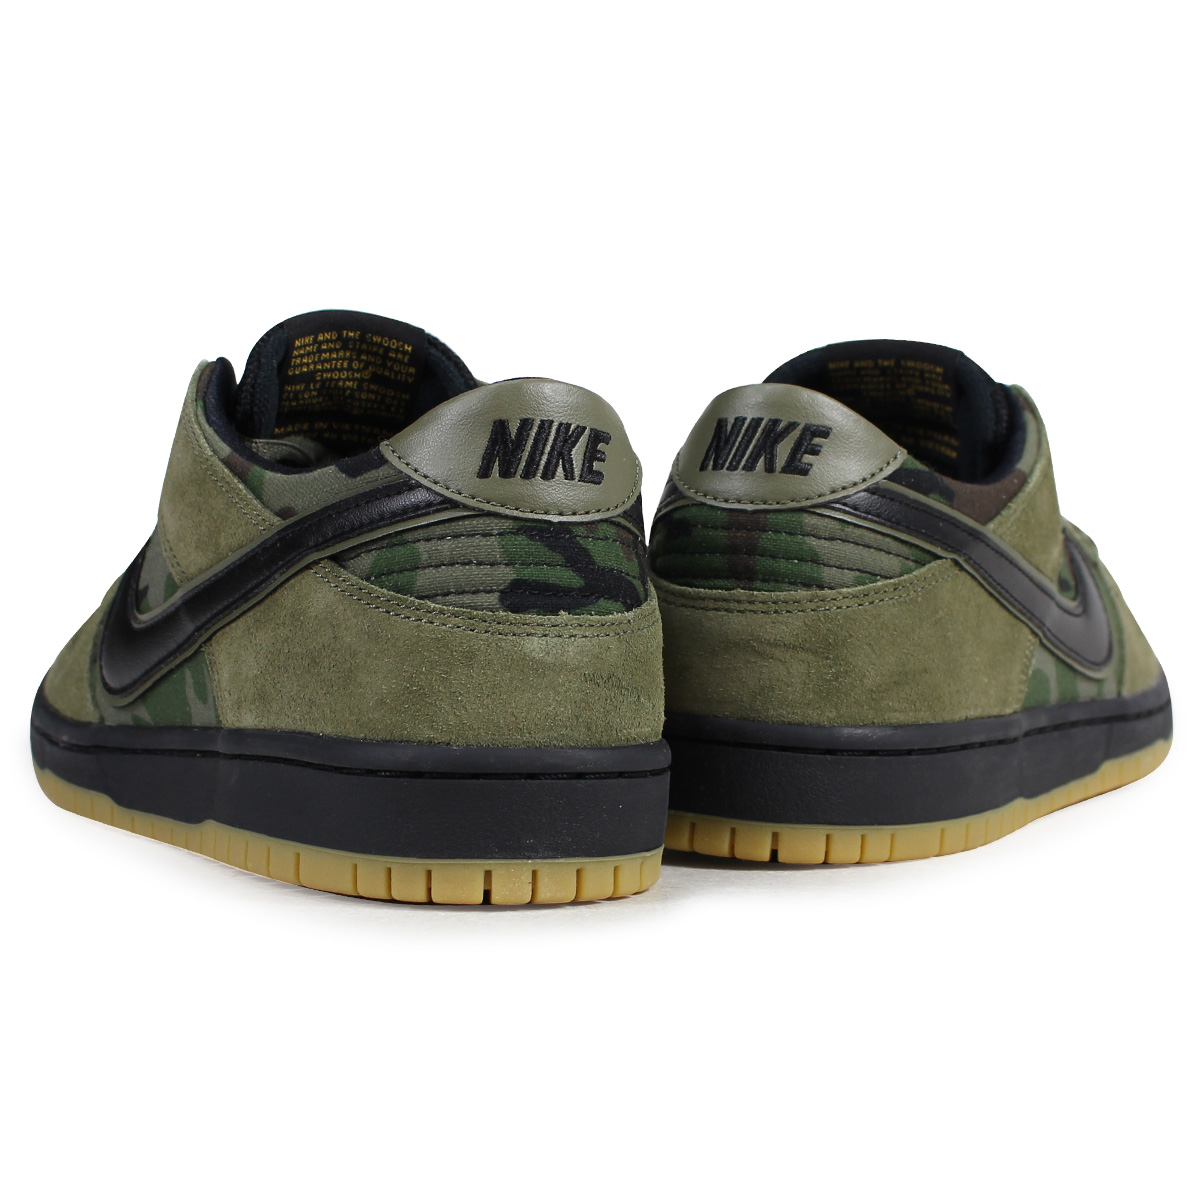 ae70574b2b8f2 ... NIKE Nike SB dunk low sneakers men ZOOM DUNK LOW PRO 854,866-209 olive  duck